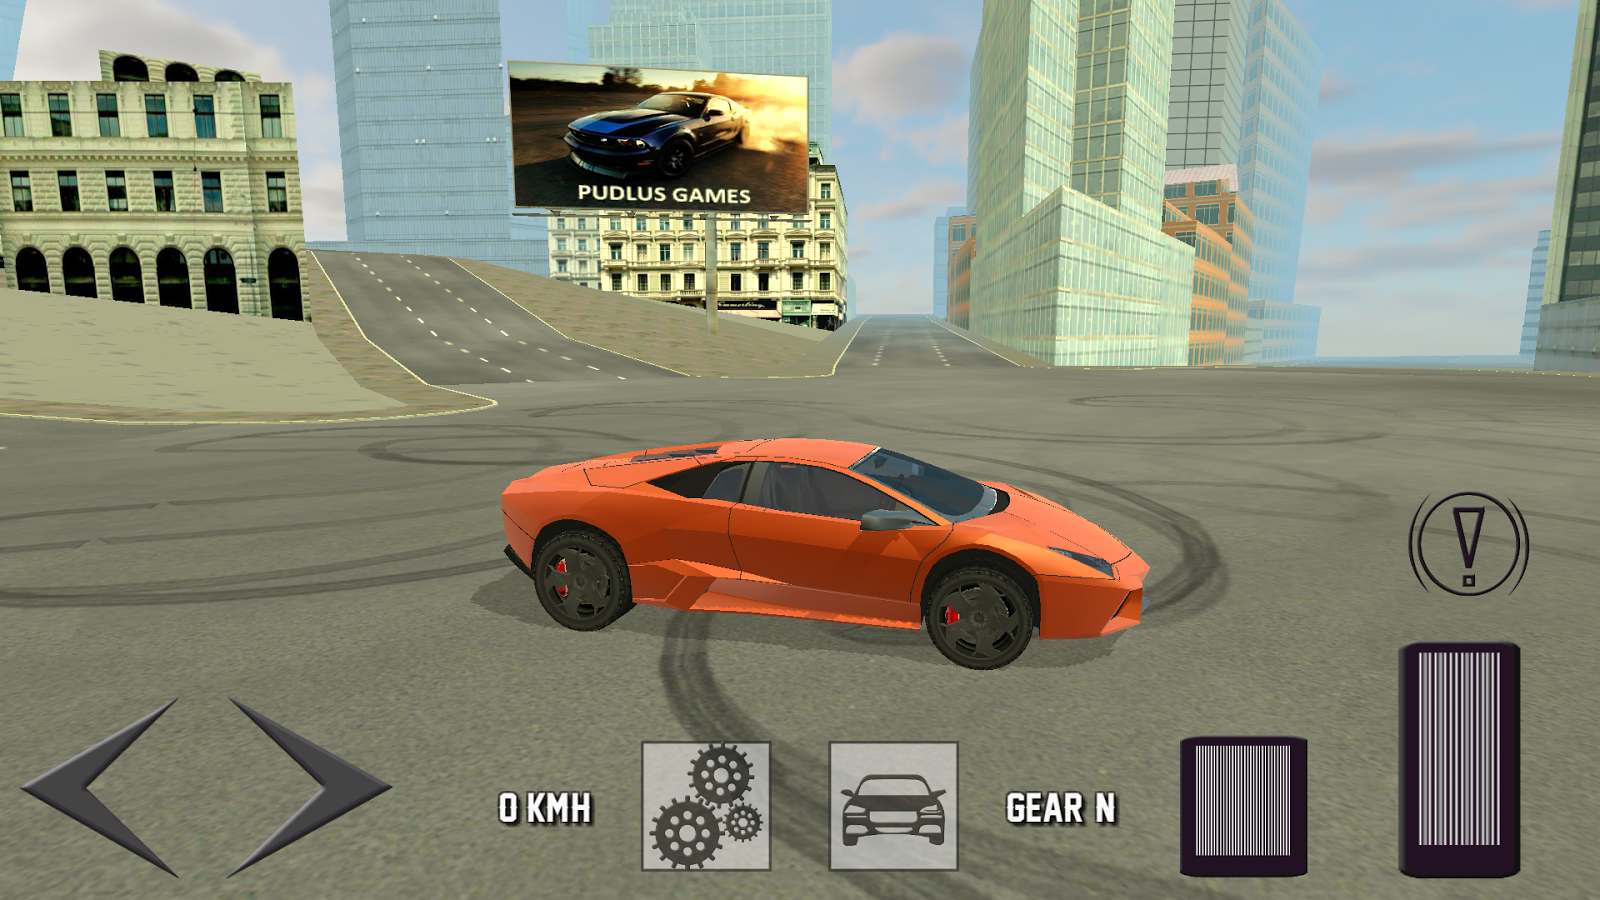 Super car city driving sim free games free online - Extreme Super Car Driving 3d Screenshot